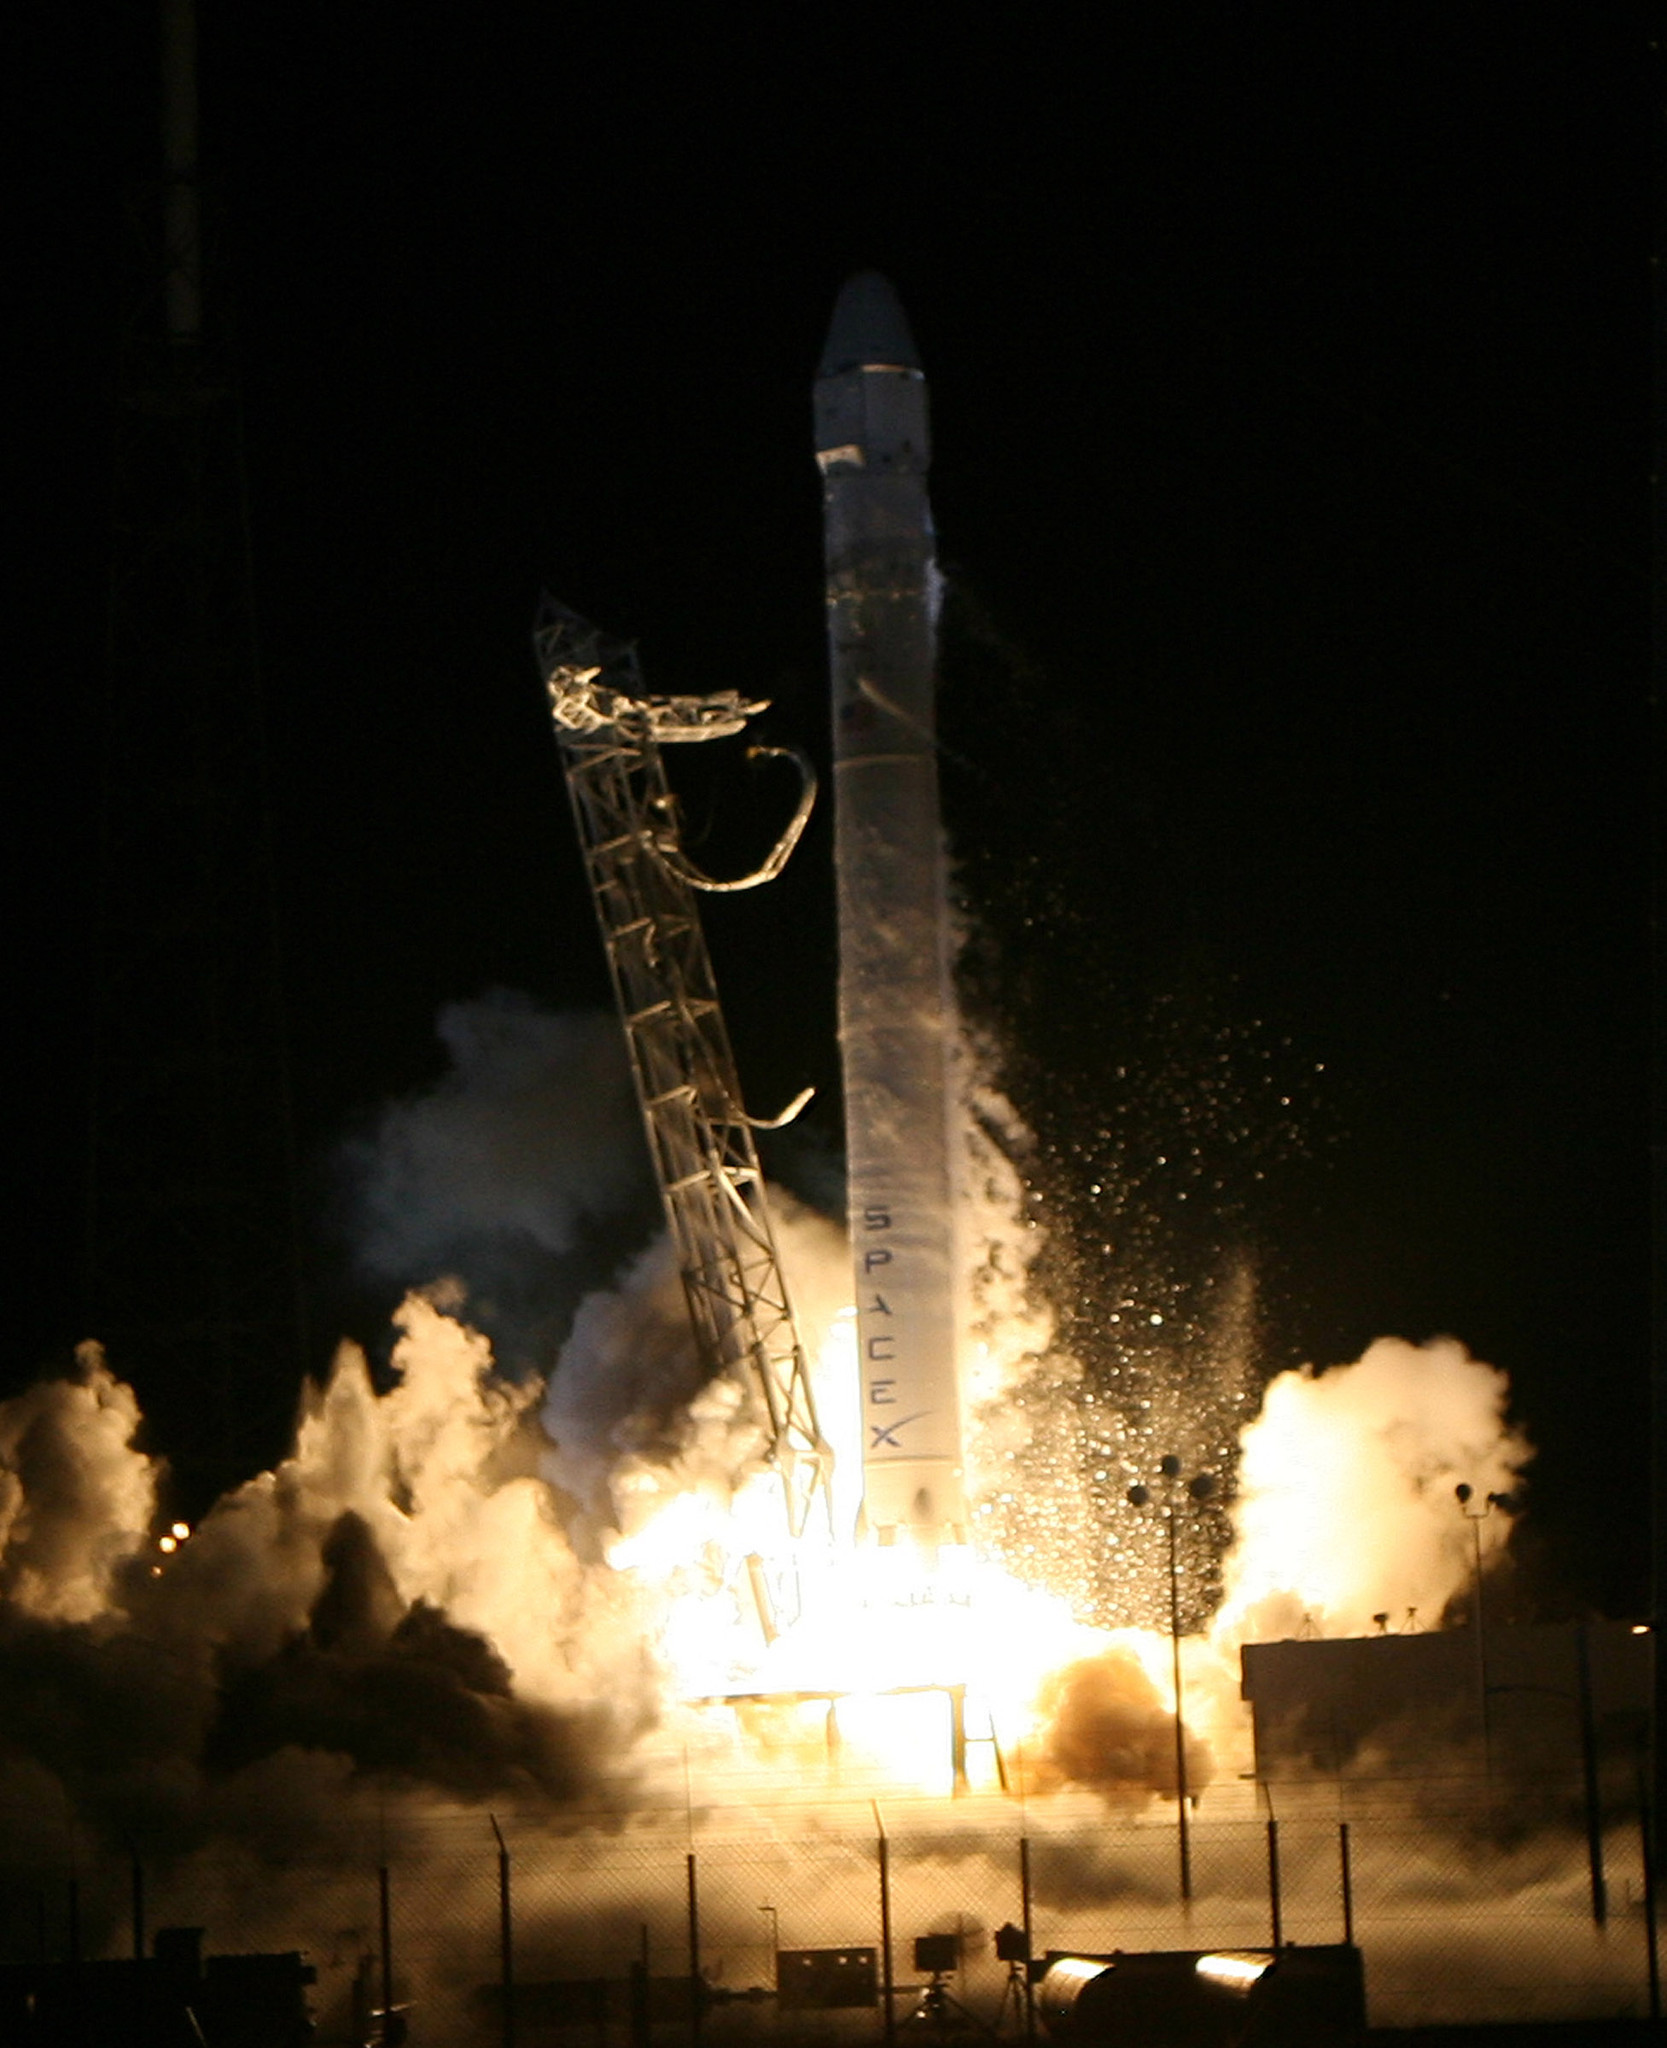 A Falcon 9 rocket carrying a Dragon capsule blasts off on a historic launch from Cape Canaveral Air Force Station.